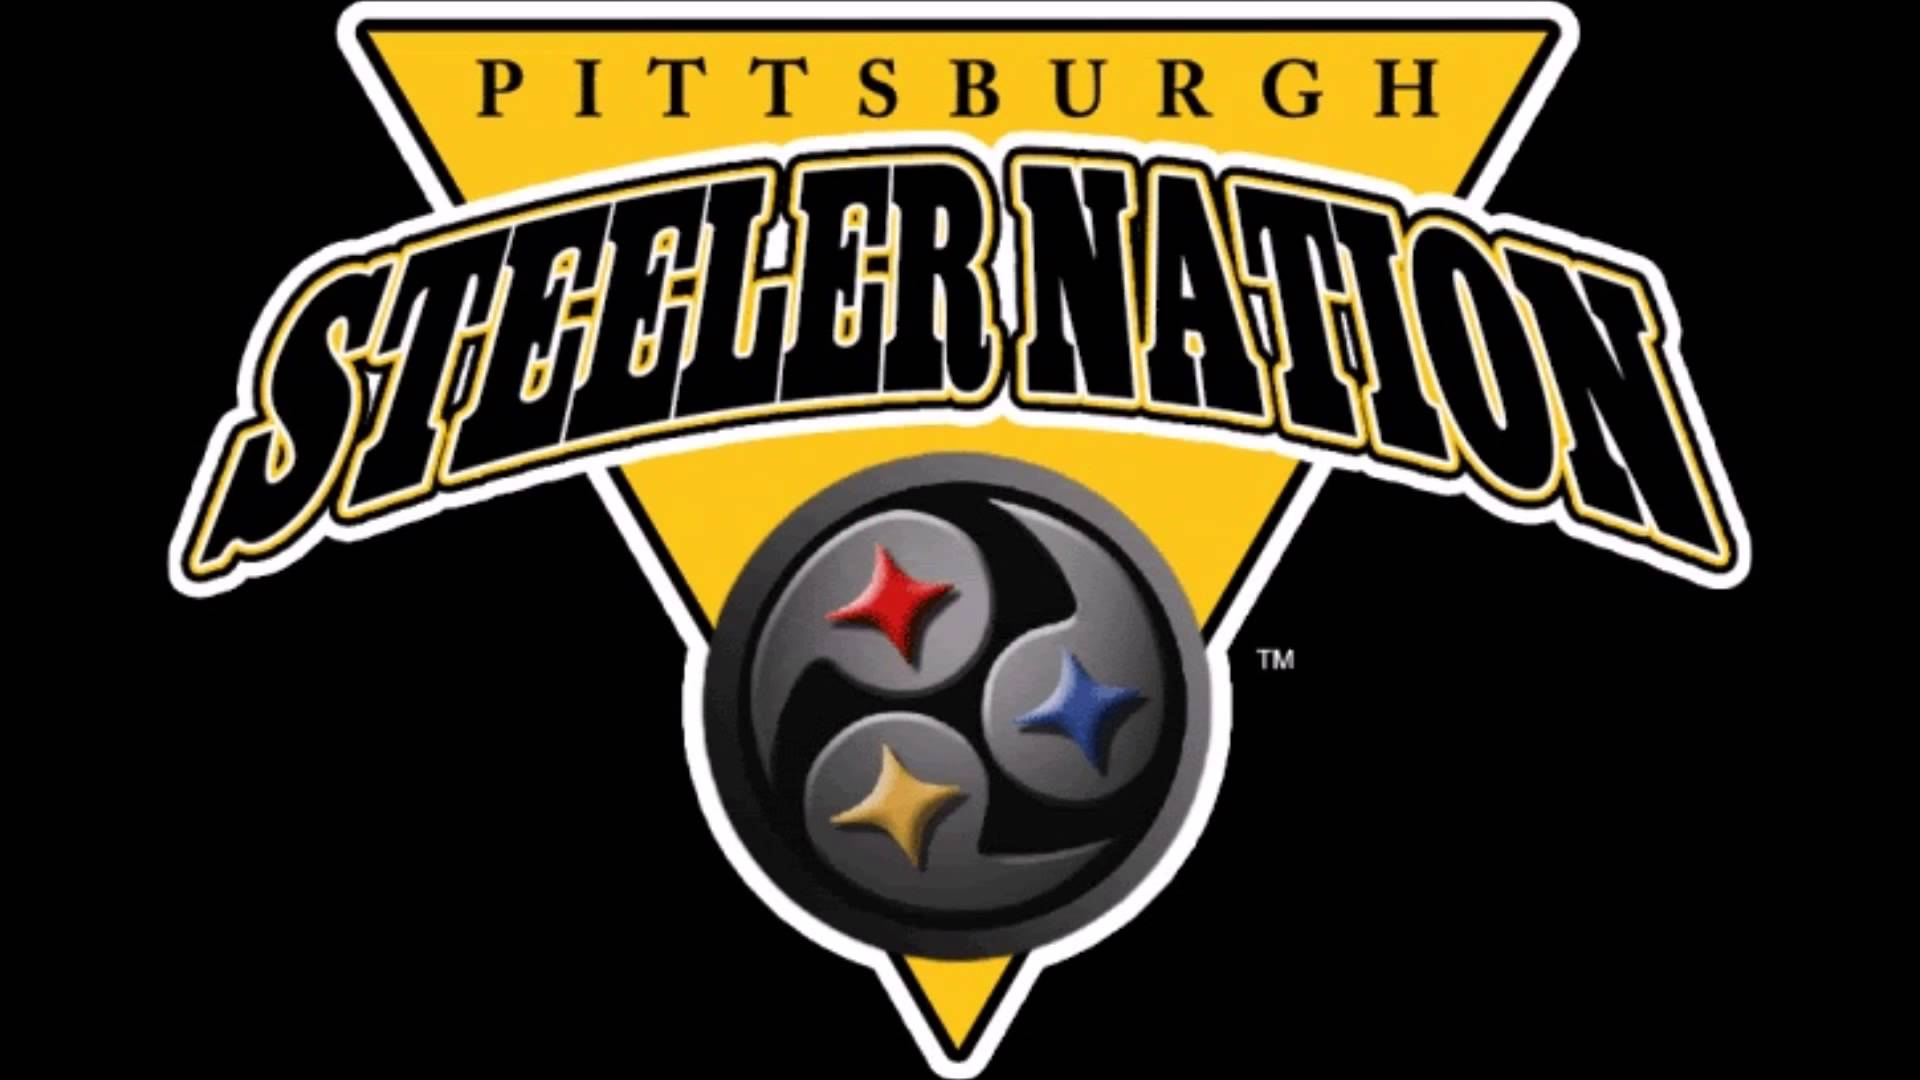 Photos Pittsburgh Steelers Logo Wallpaper HD.